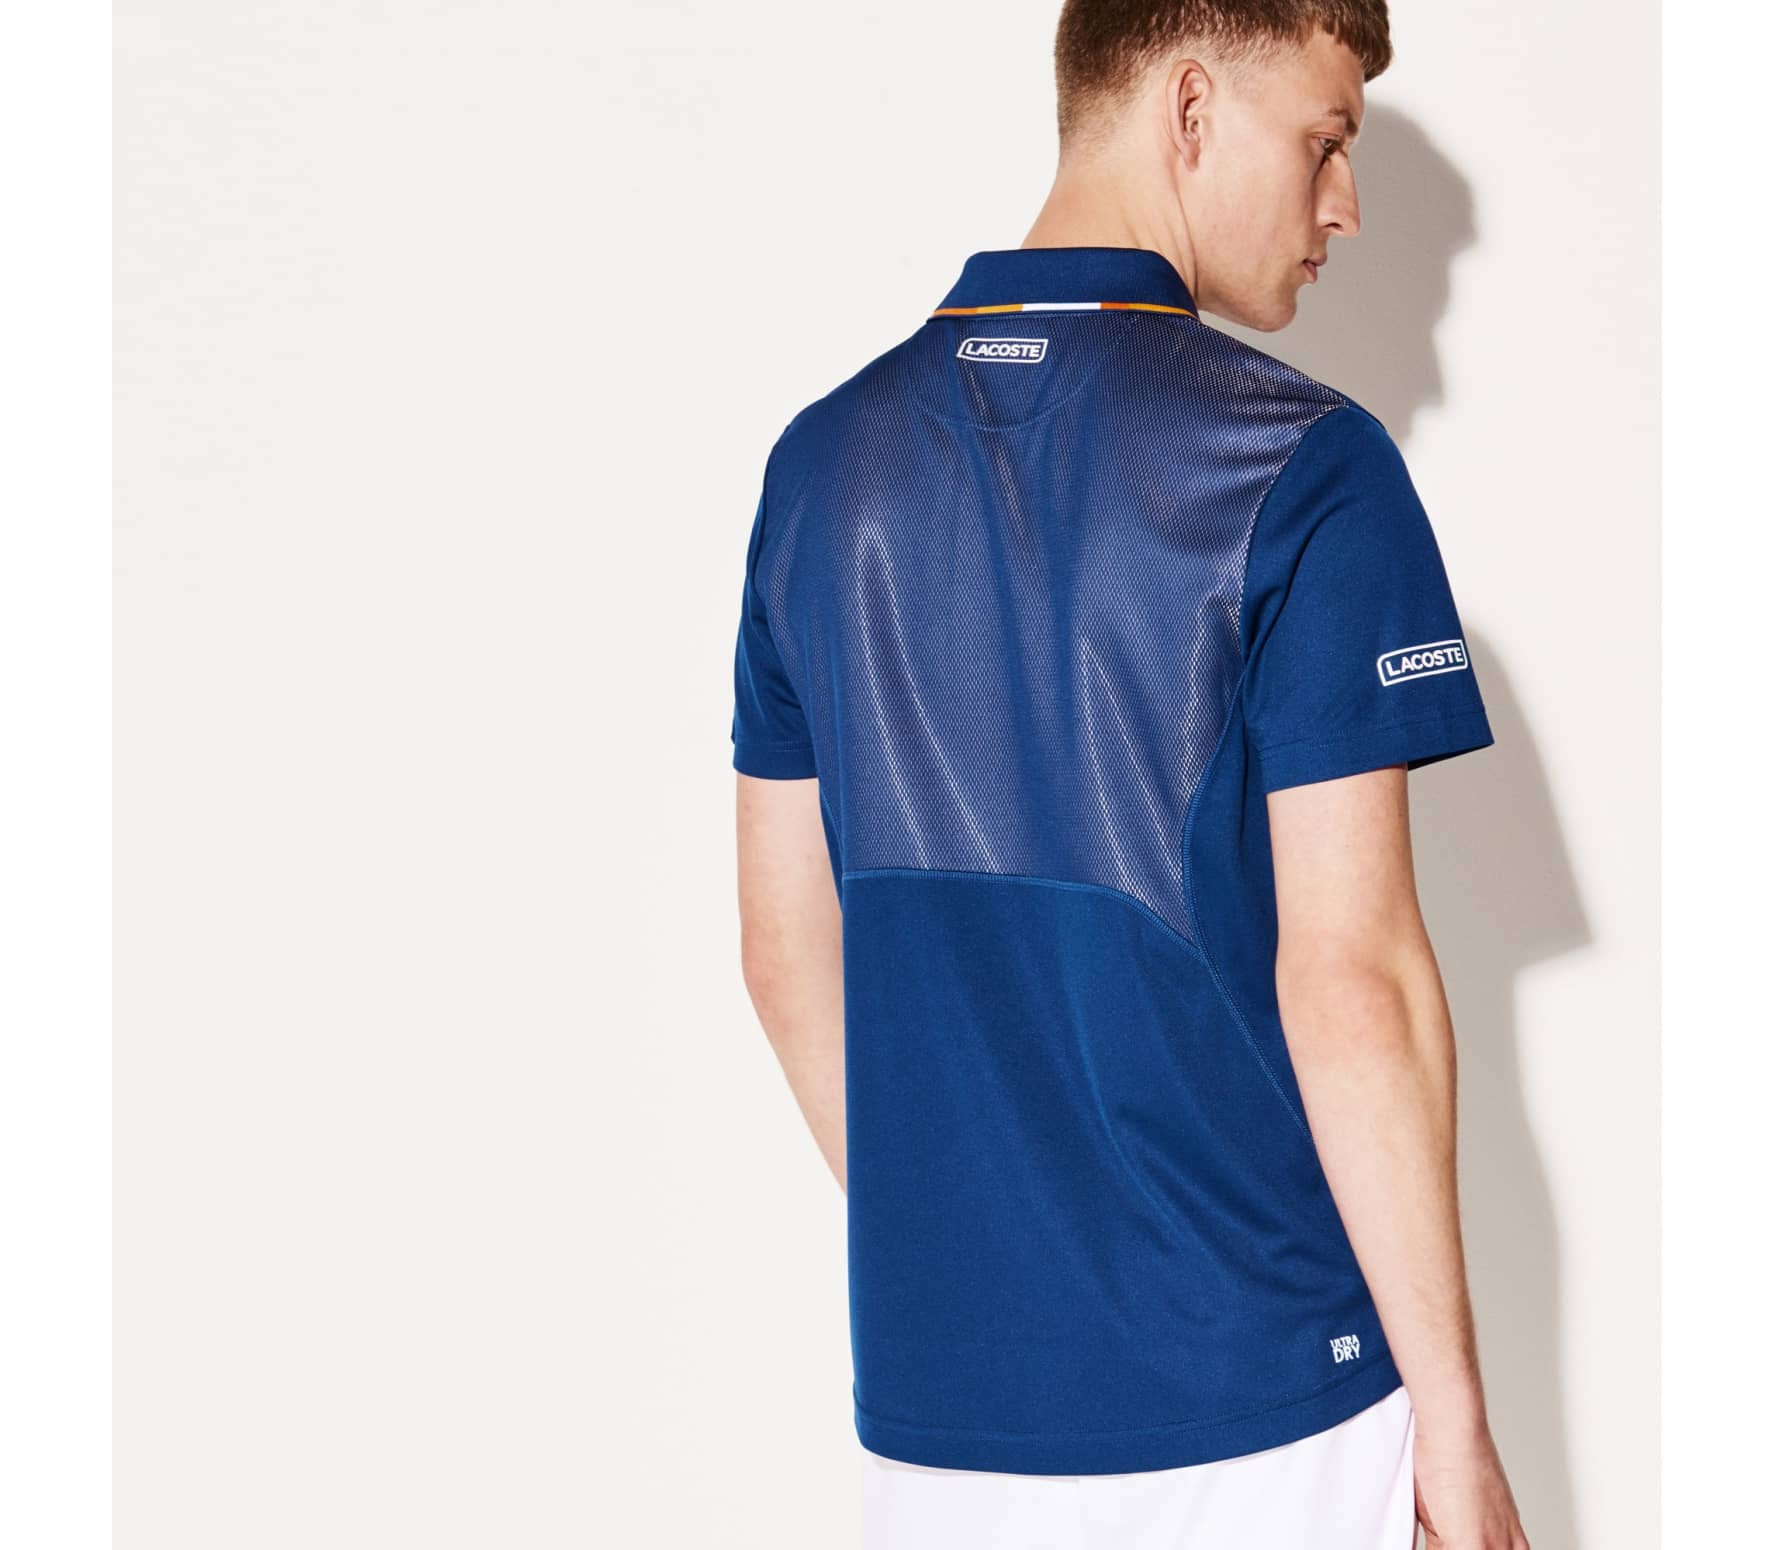 014f340c01 Lacoste - Court Sleeved Ribbed Collar Hommes Tennis Polo (bleu / jaune)